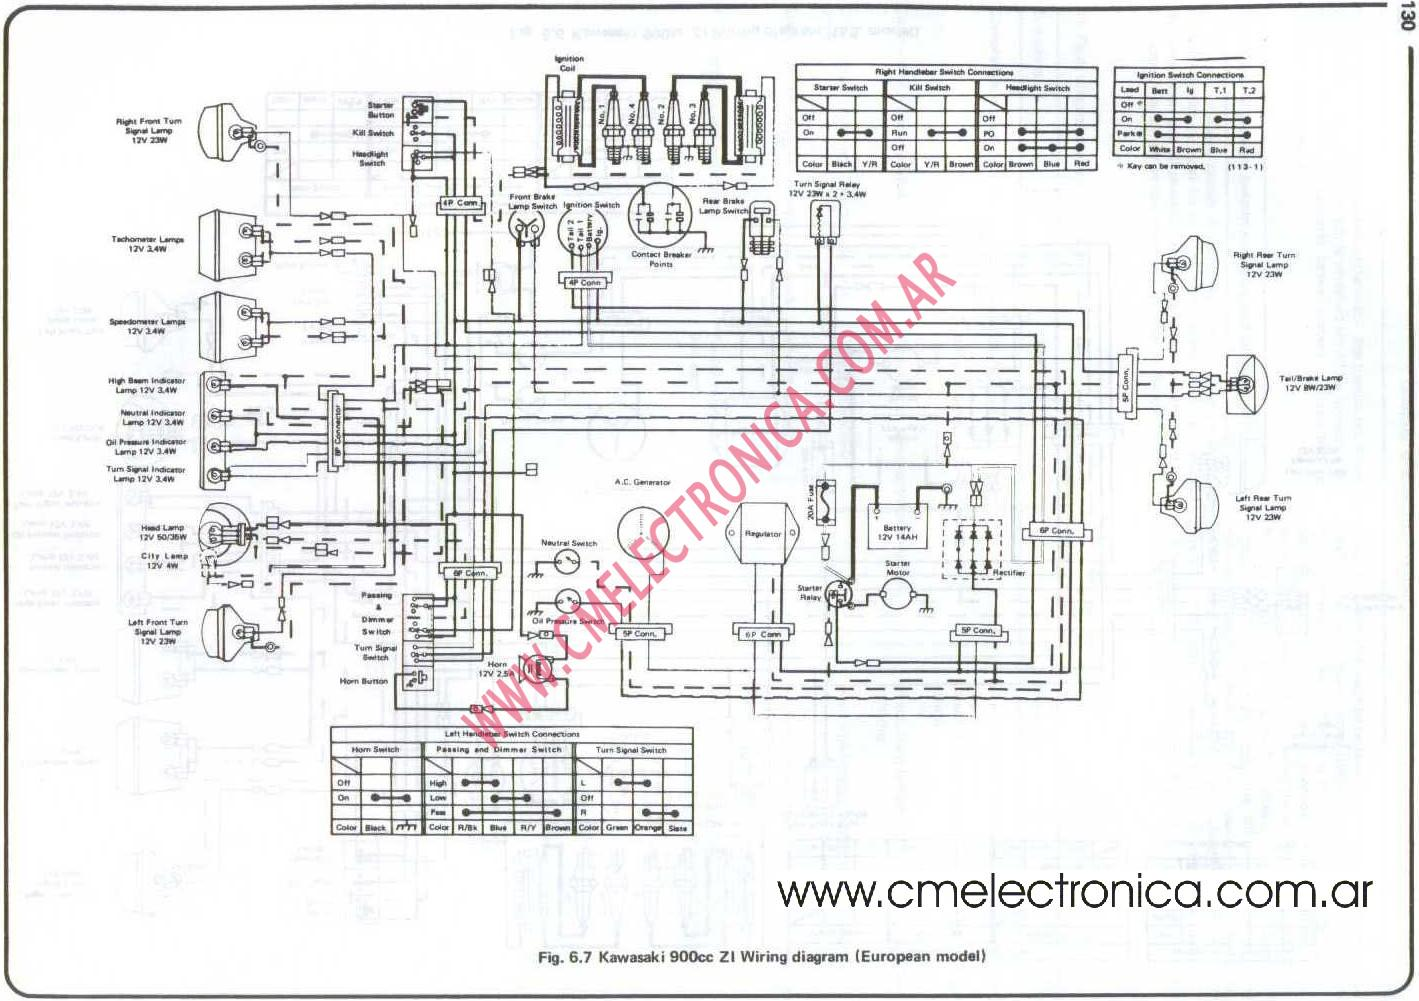 kawasaki z1 900 z1 wiring diagram coleman furnace wiring diagram \u2022 wiring diagrams Philco Model 60 at readyjetset.co